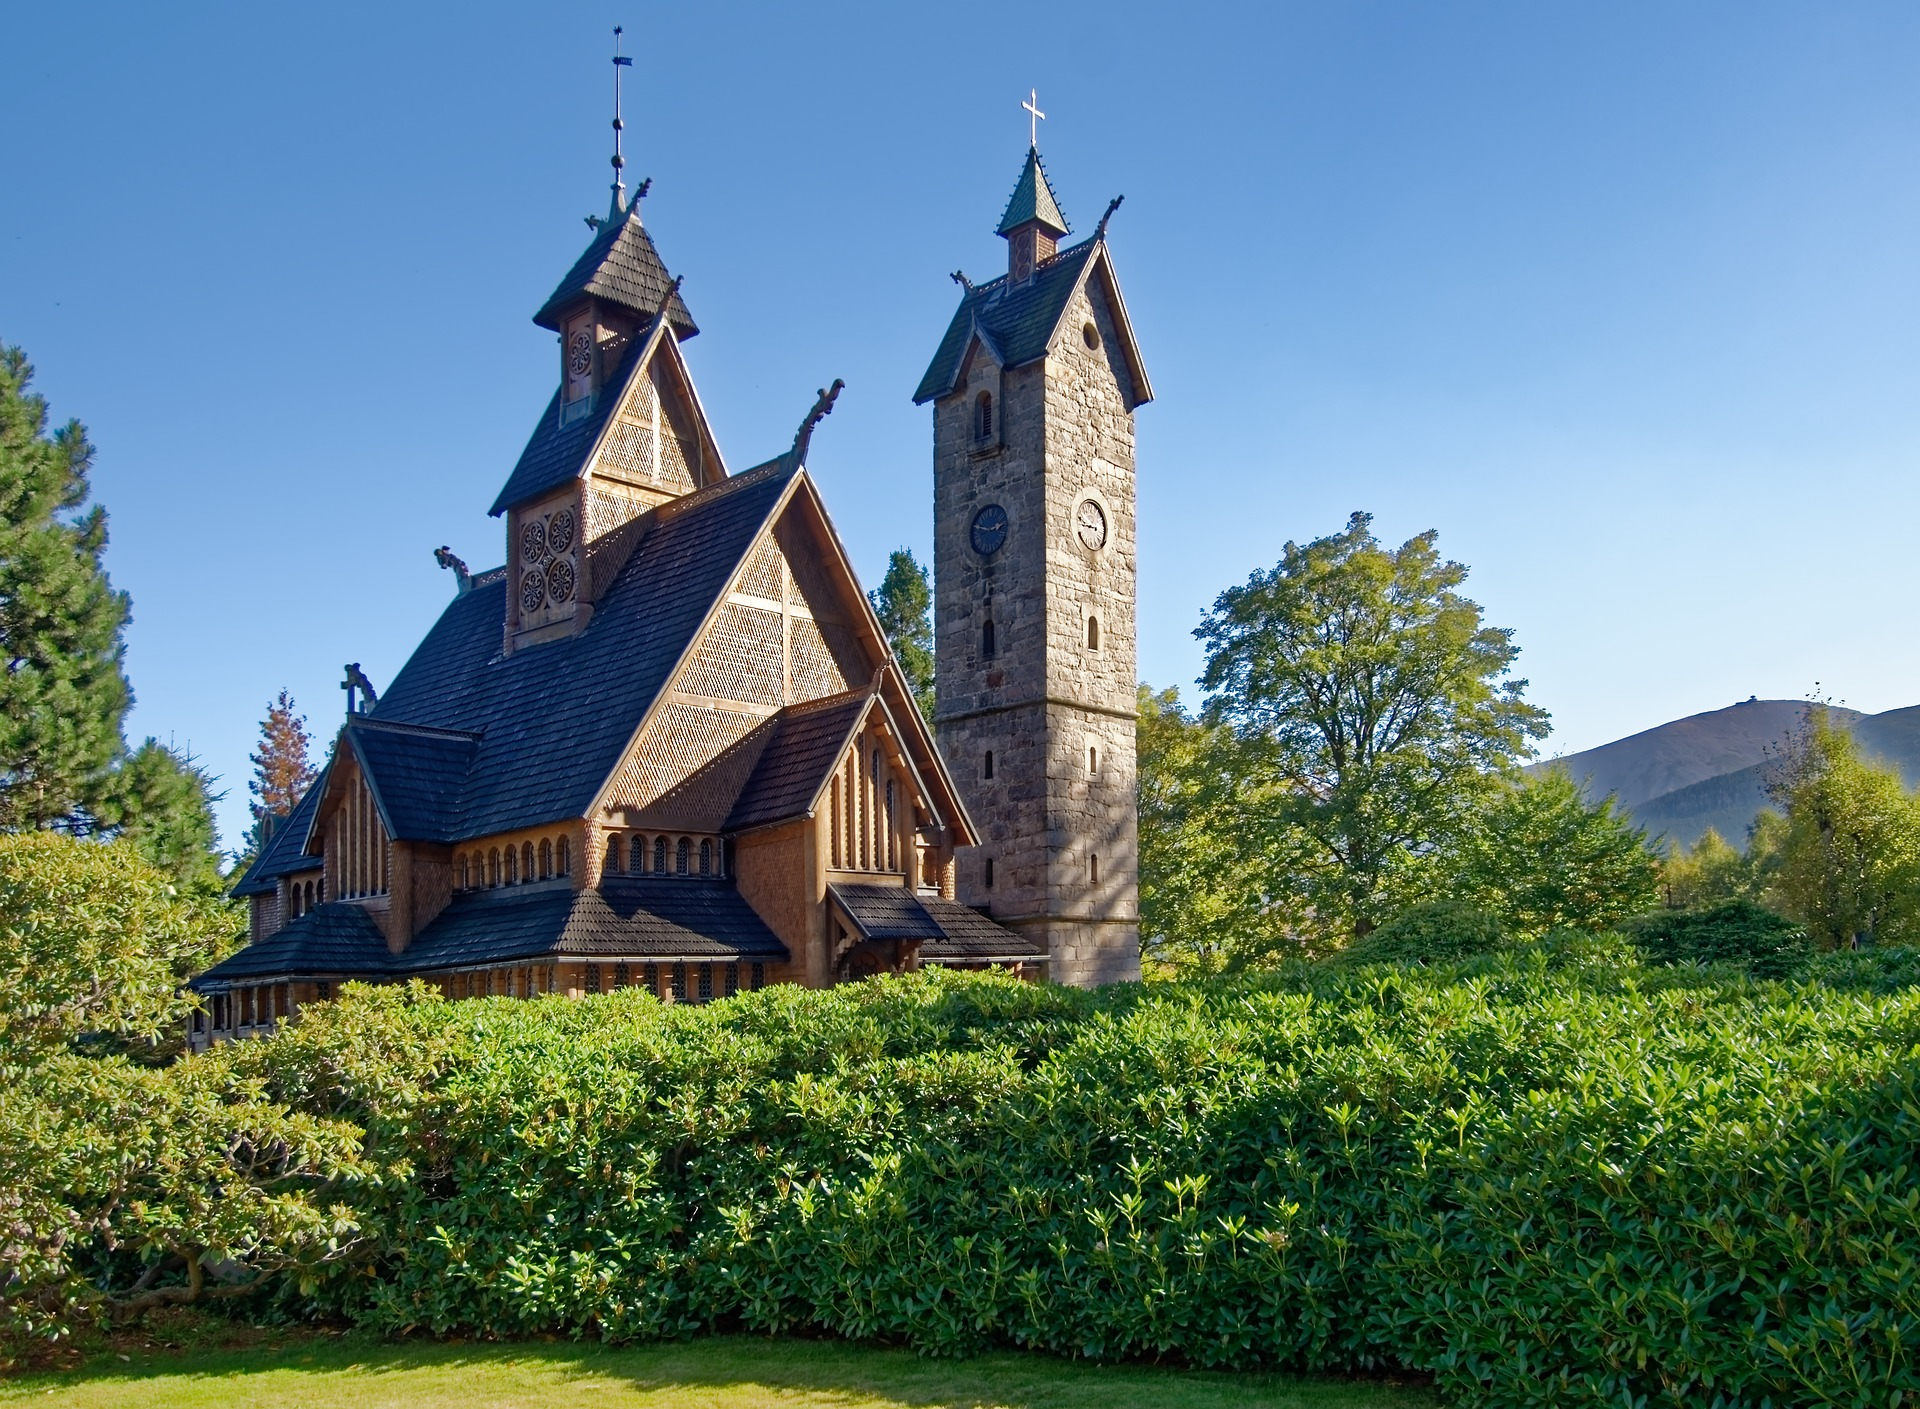 The Vang stave church in summer